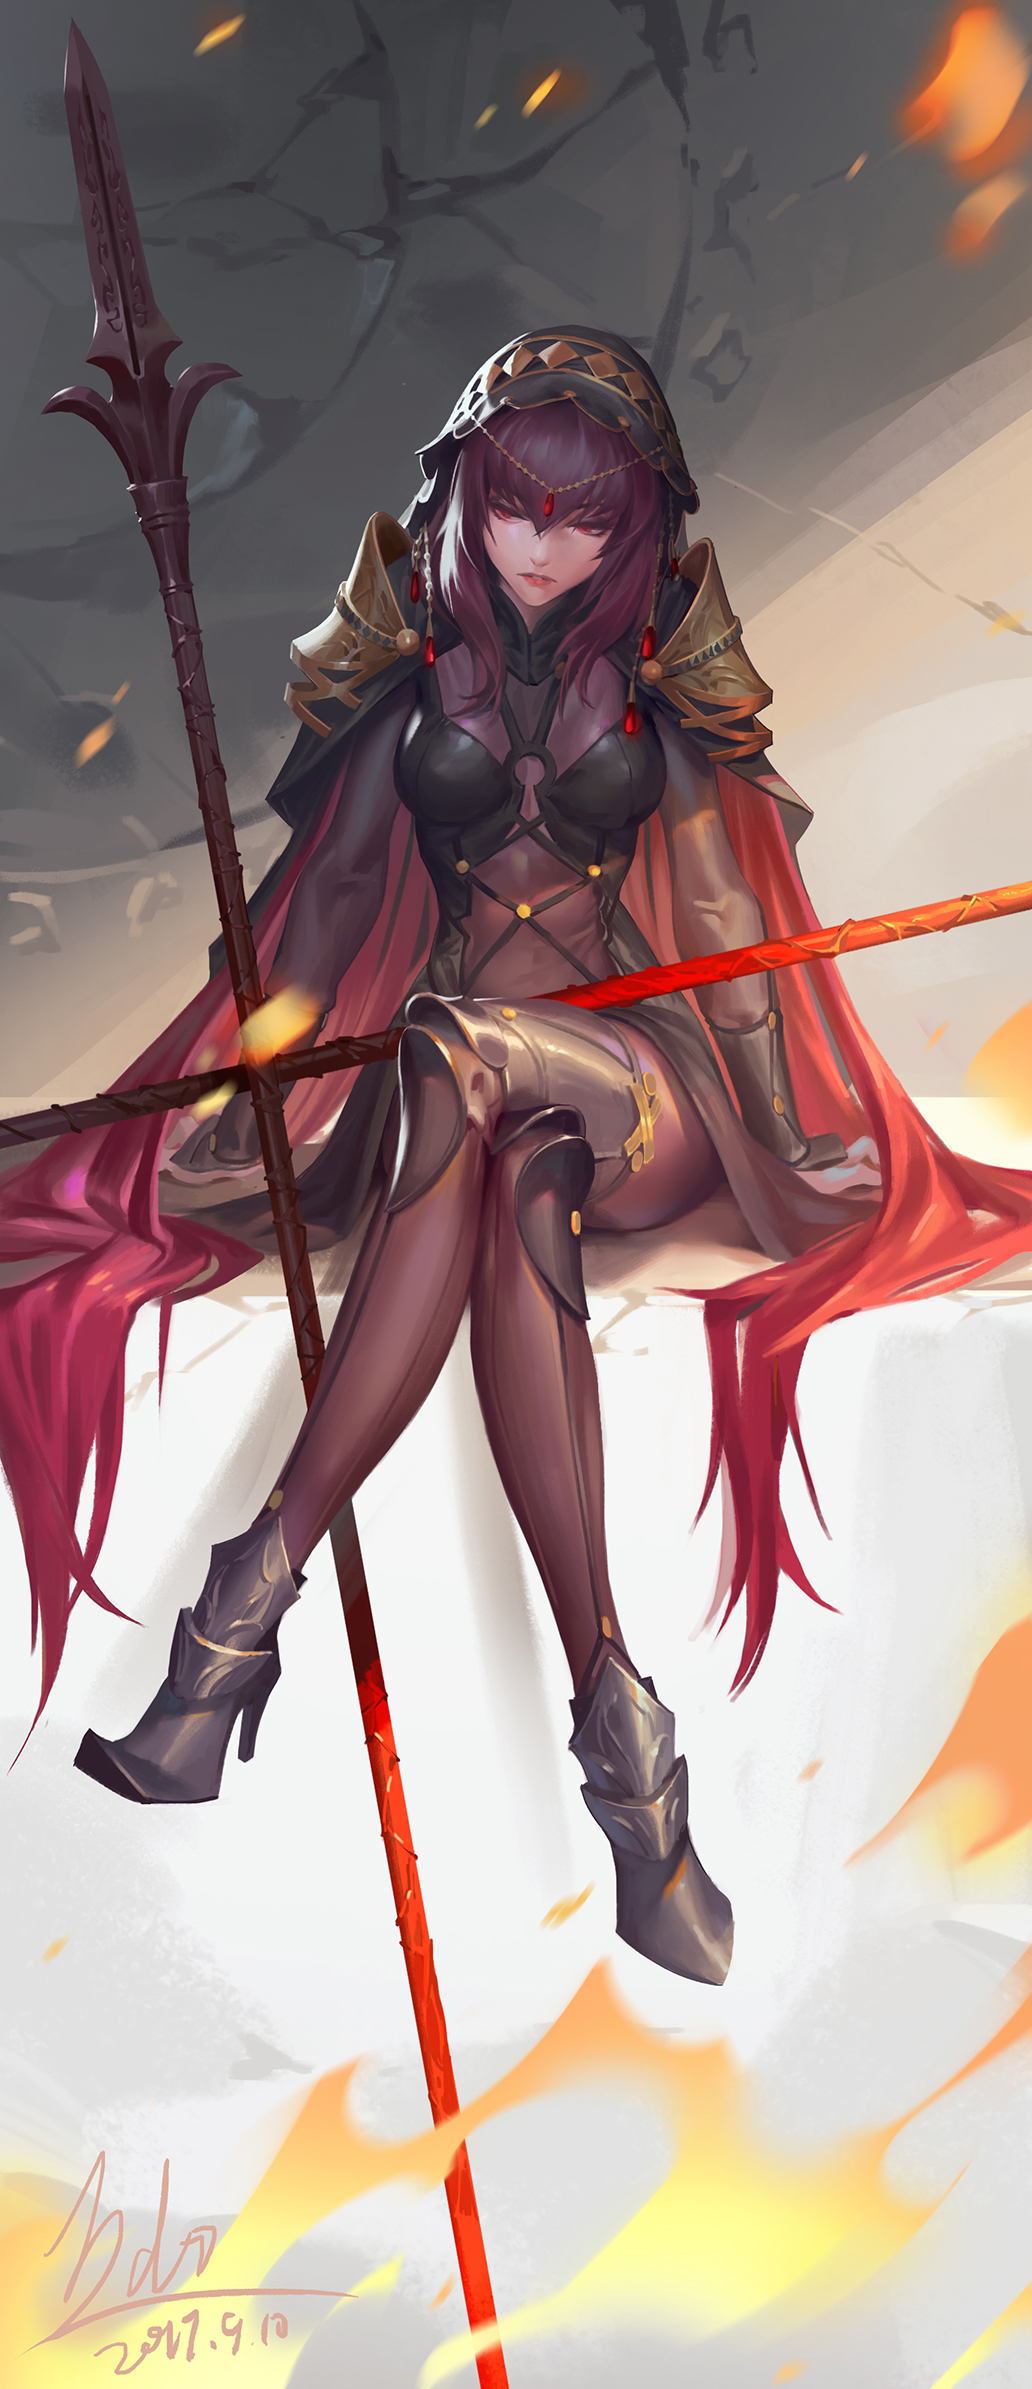 Lancer (Fate/Grand Order) - Zerochan Anime Image Board